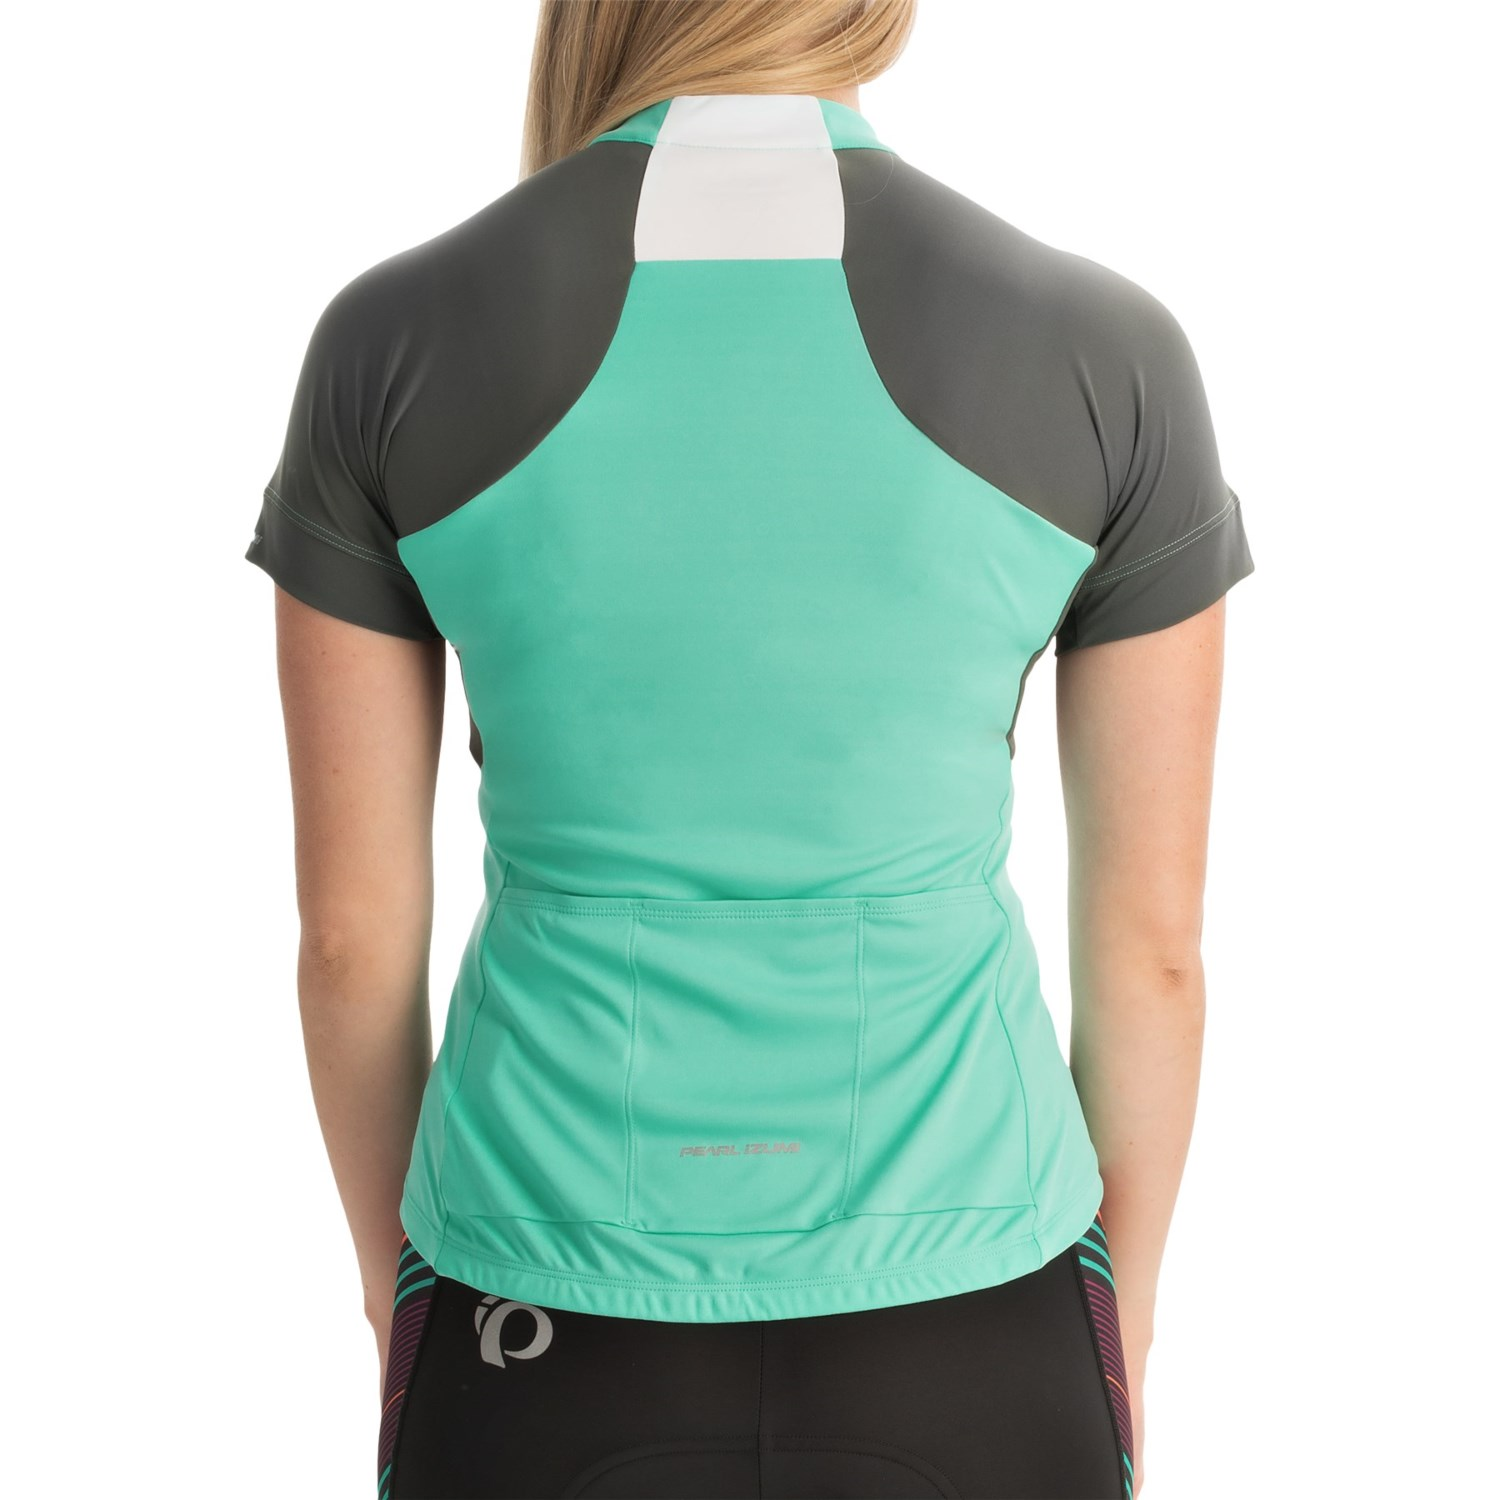 Pearl izumi elite pursuit cycling jersey for women for Pearl izumi cycling shirt